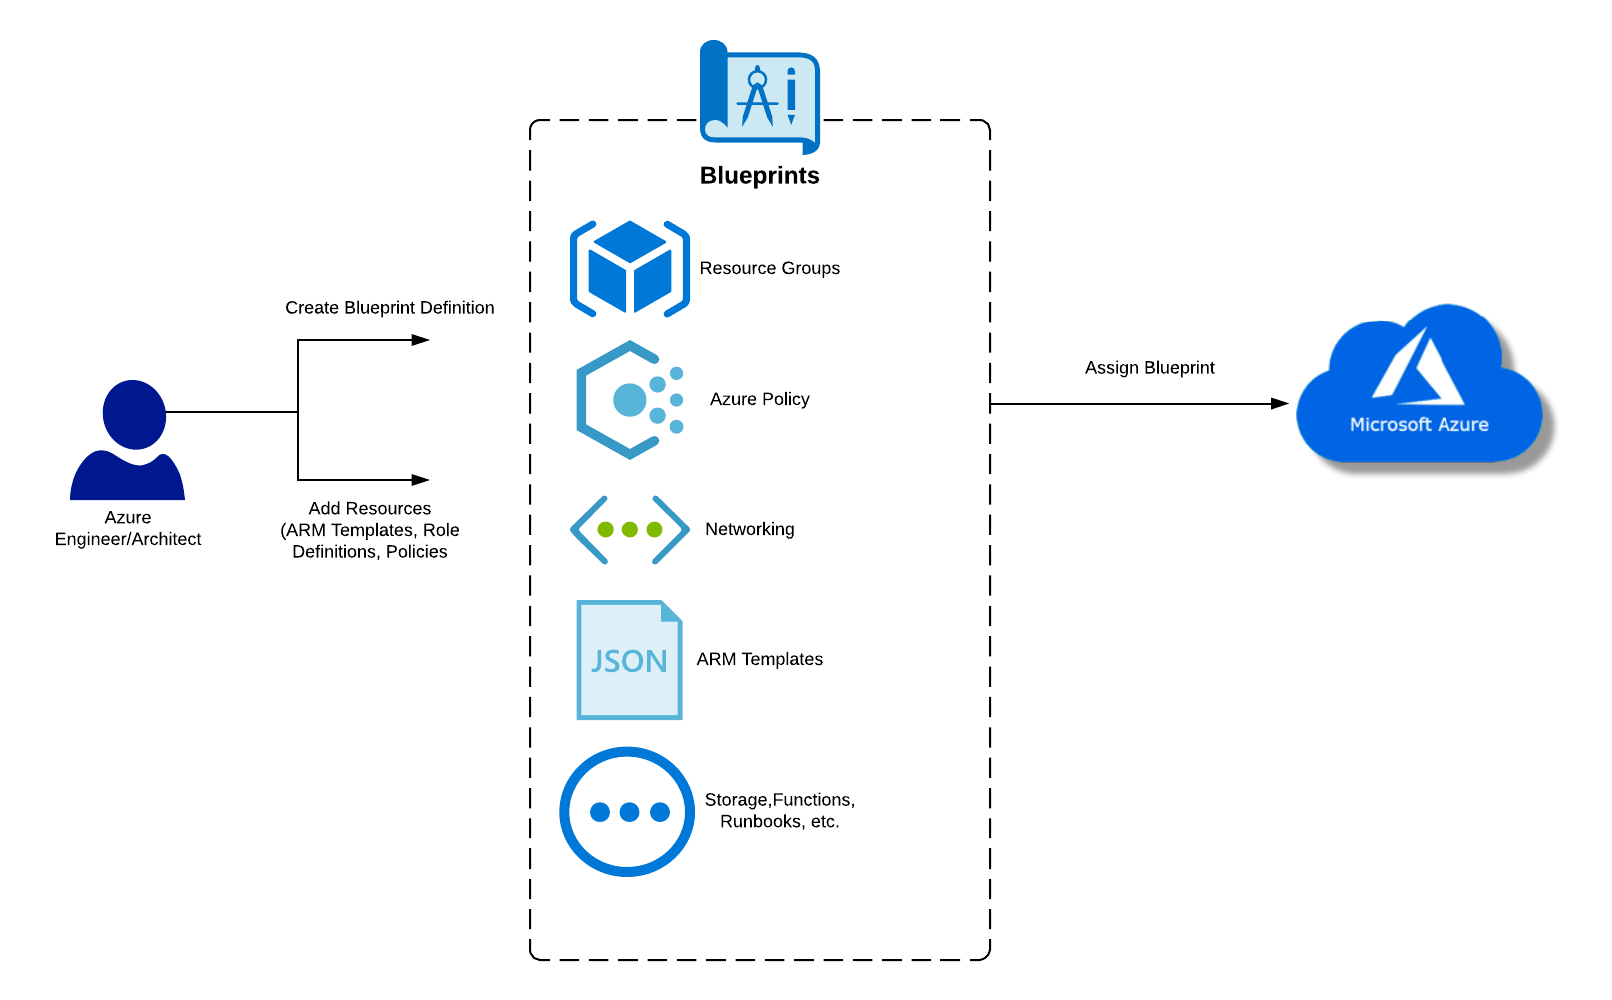 Microsoft Azure Blueprints architecture